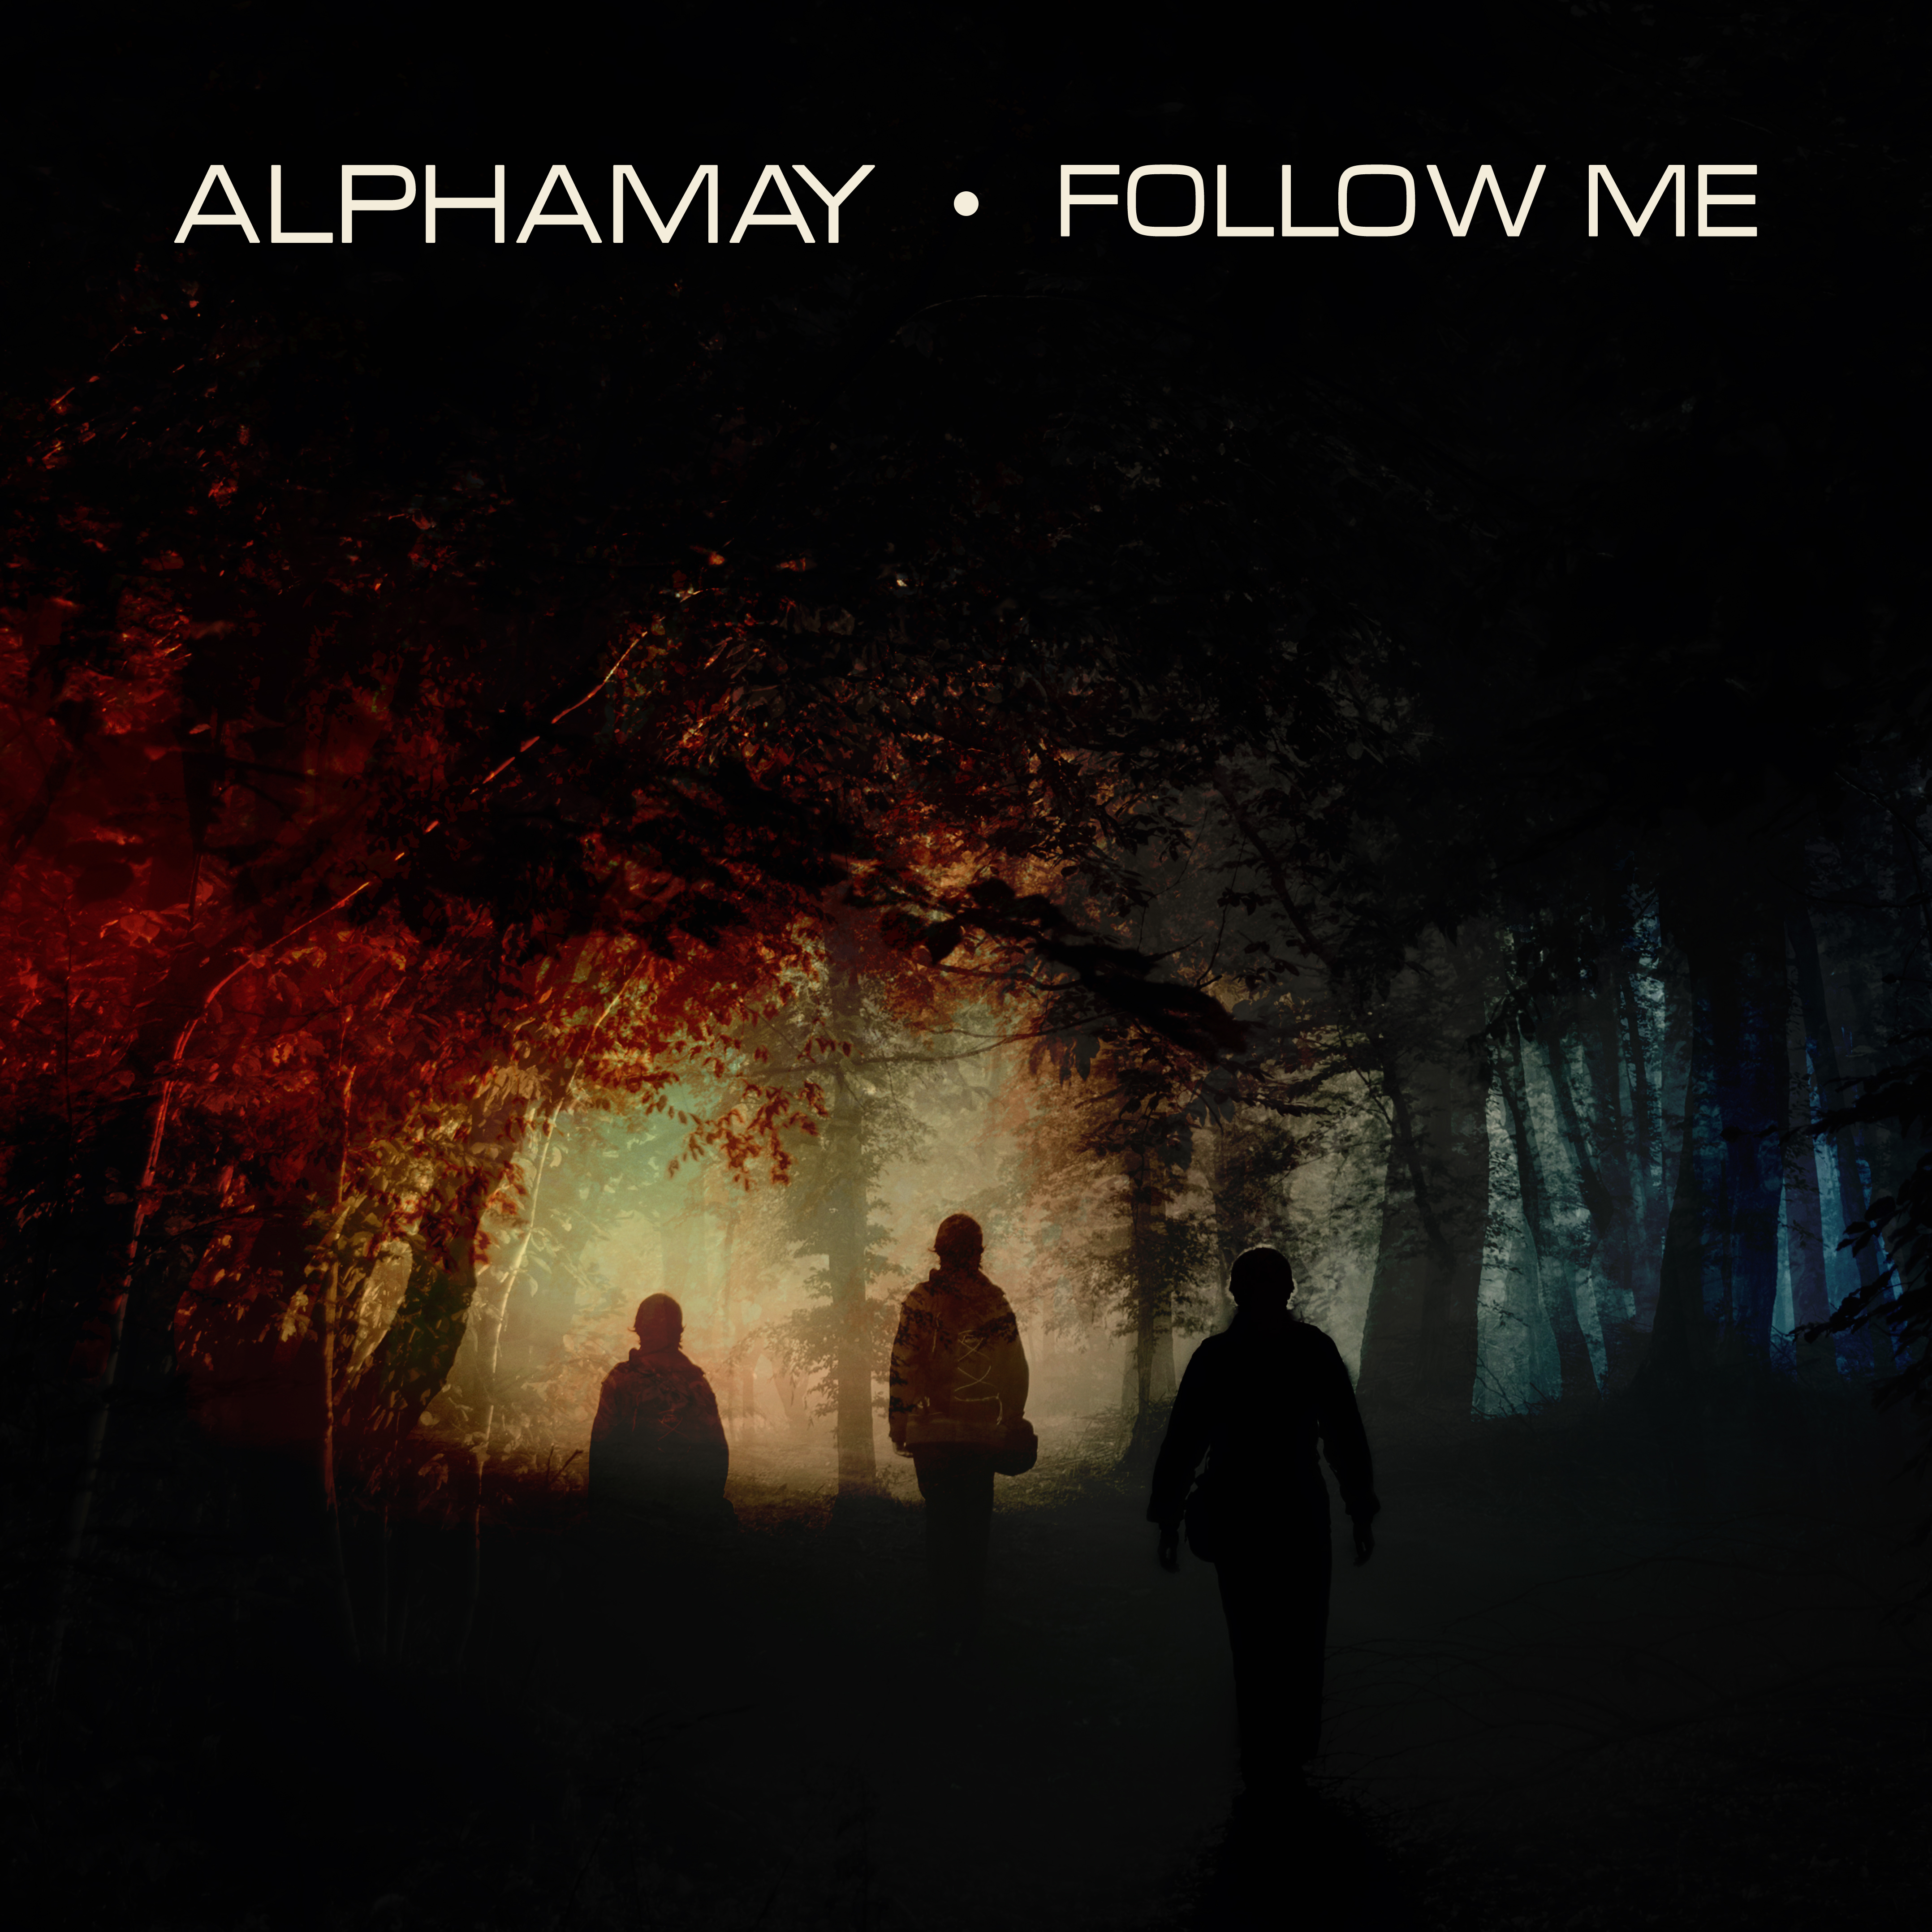 Follow_Me_Cover_001